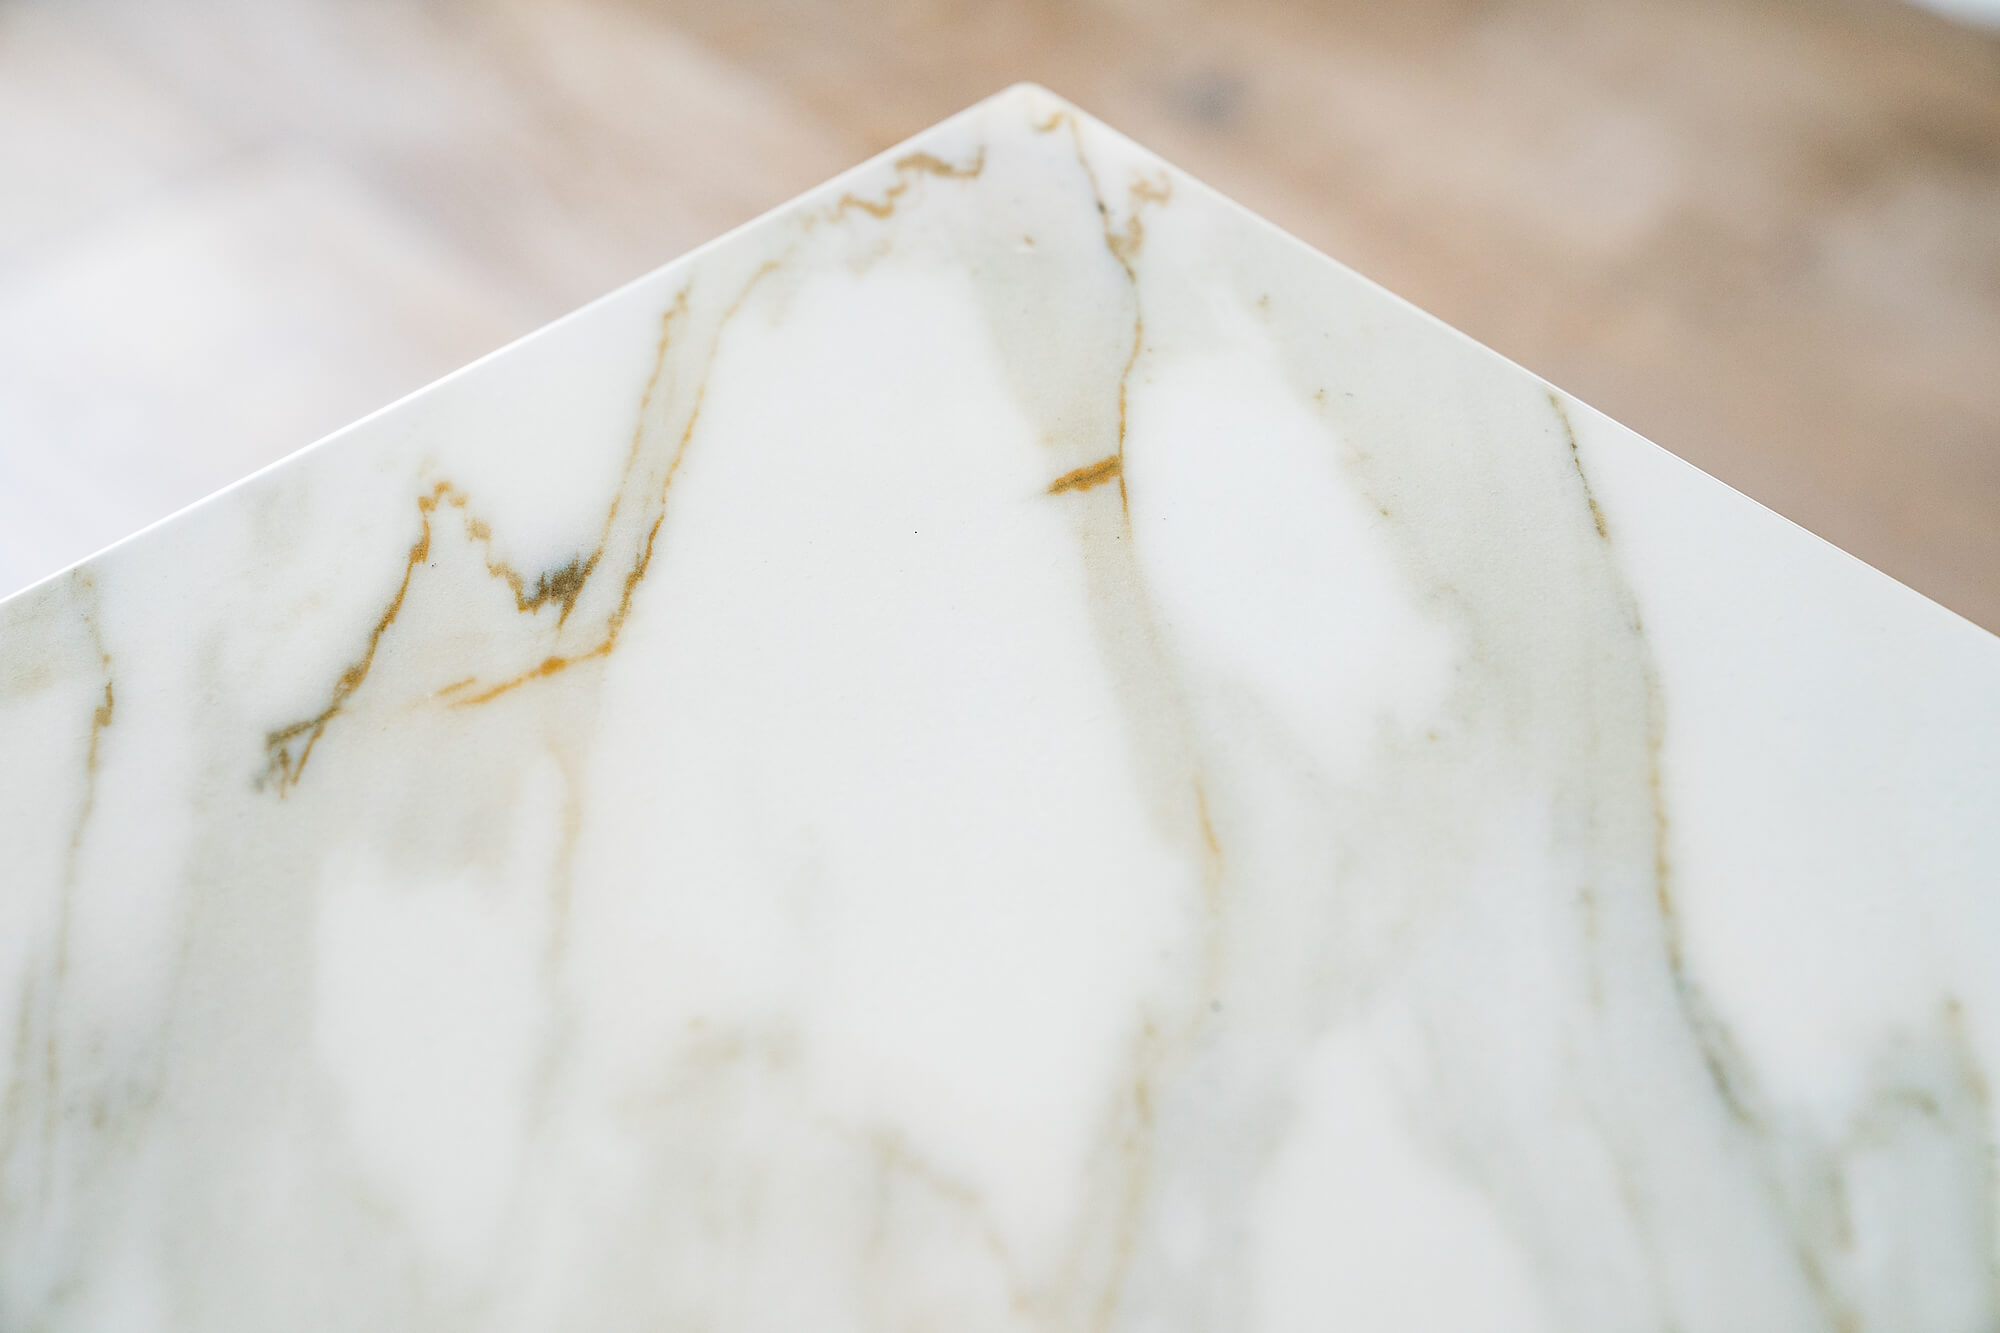 white and gold countertop detail